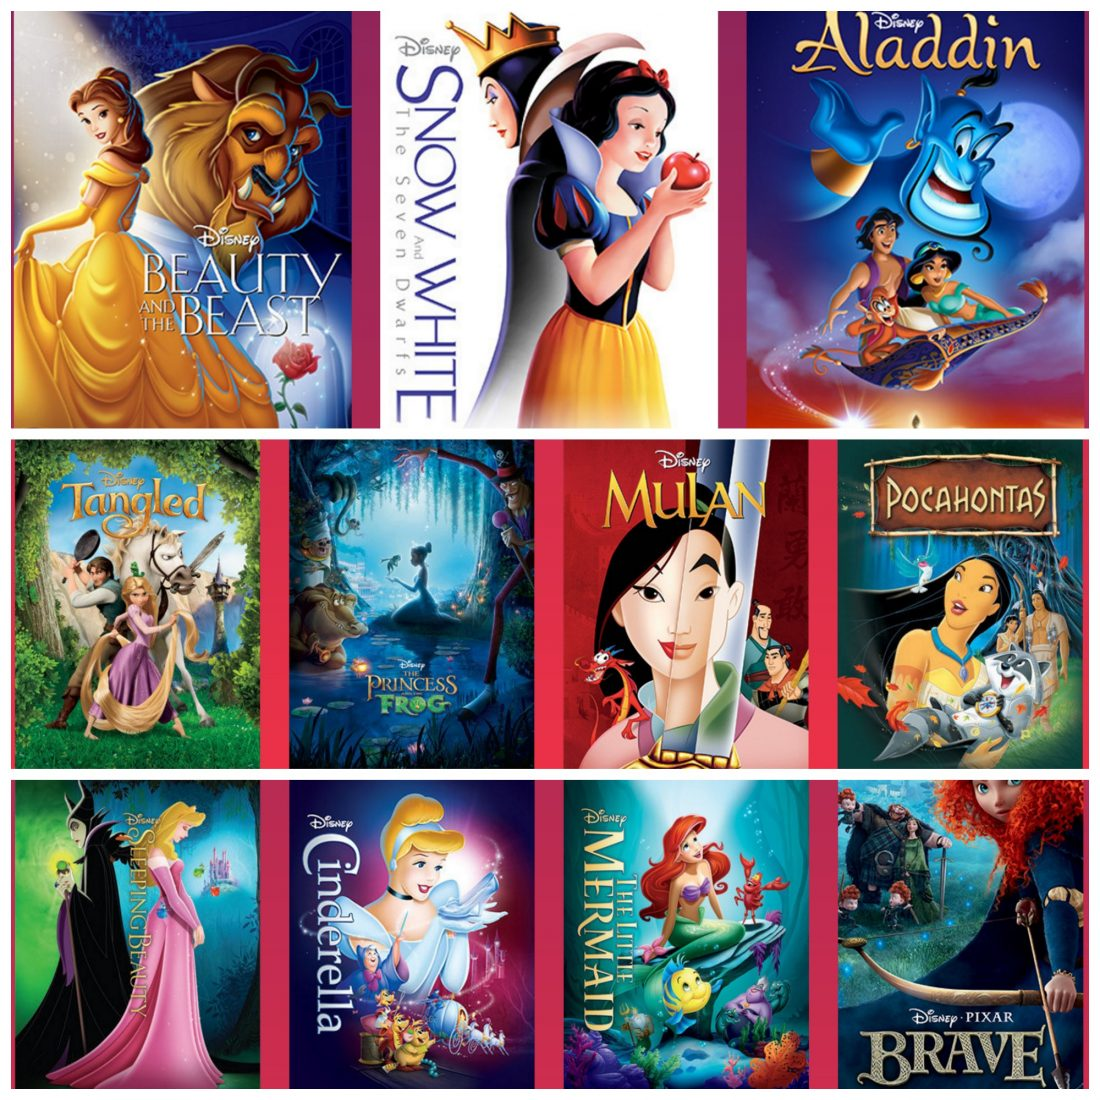 all of the disney princess movies are out of the vault fun new